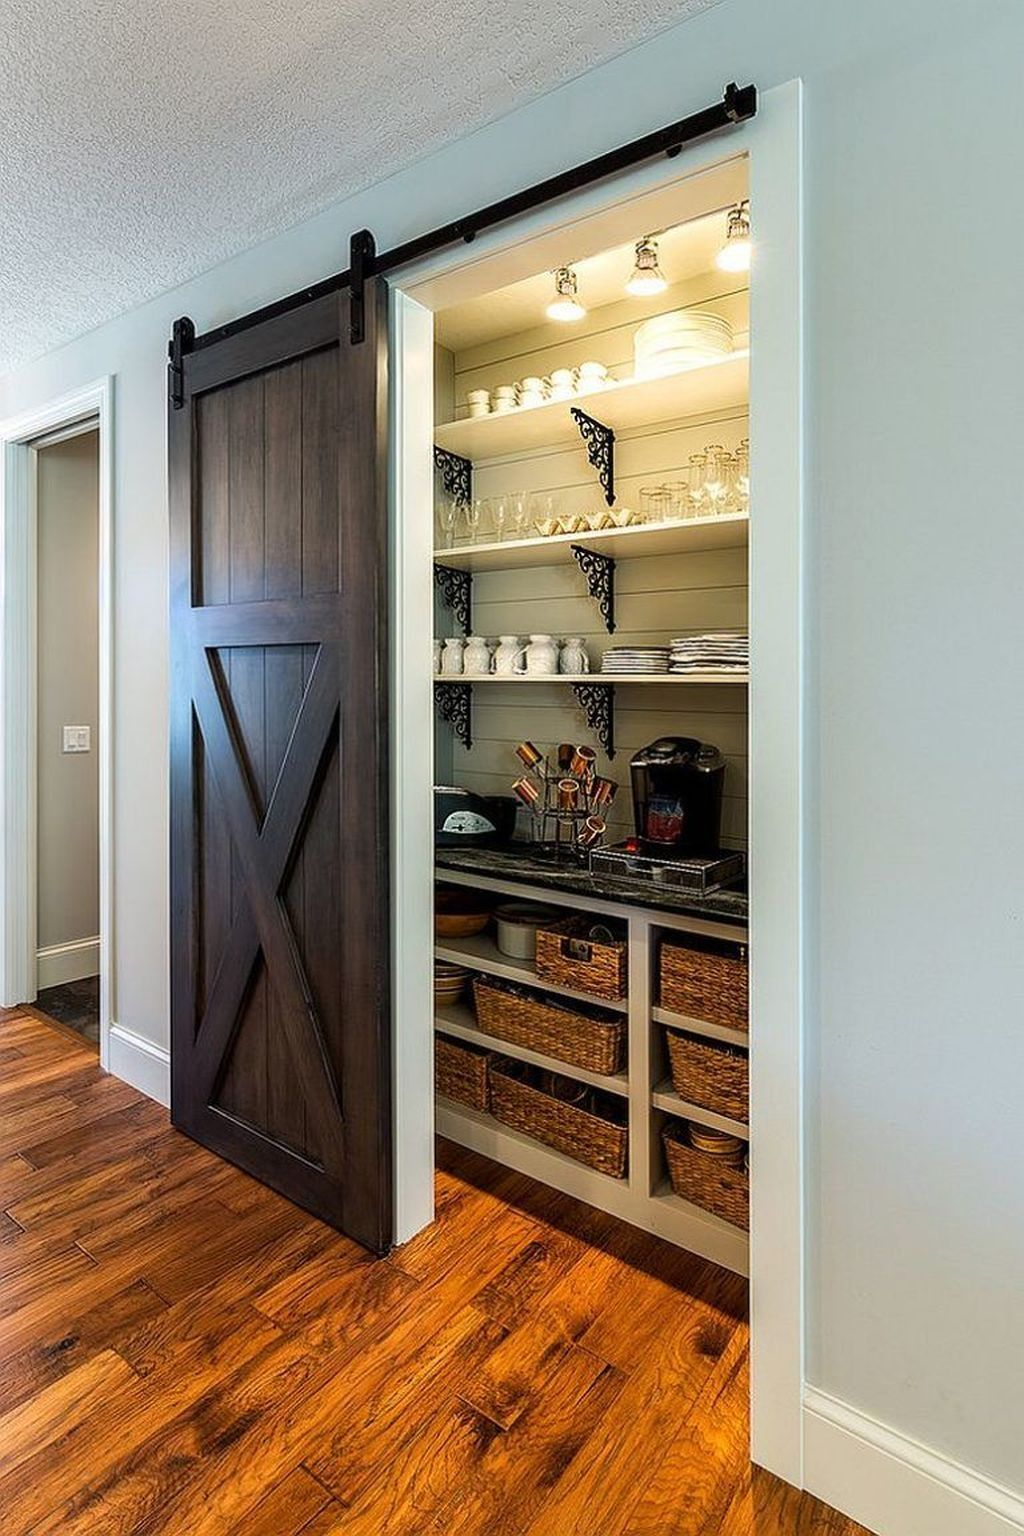 36 Rustic Pantry Door Ideas For Your Inspiration In 2020 Rustic